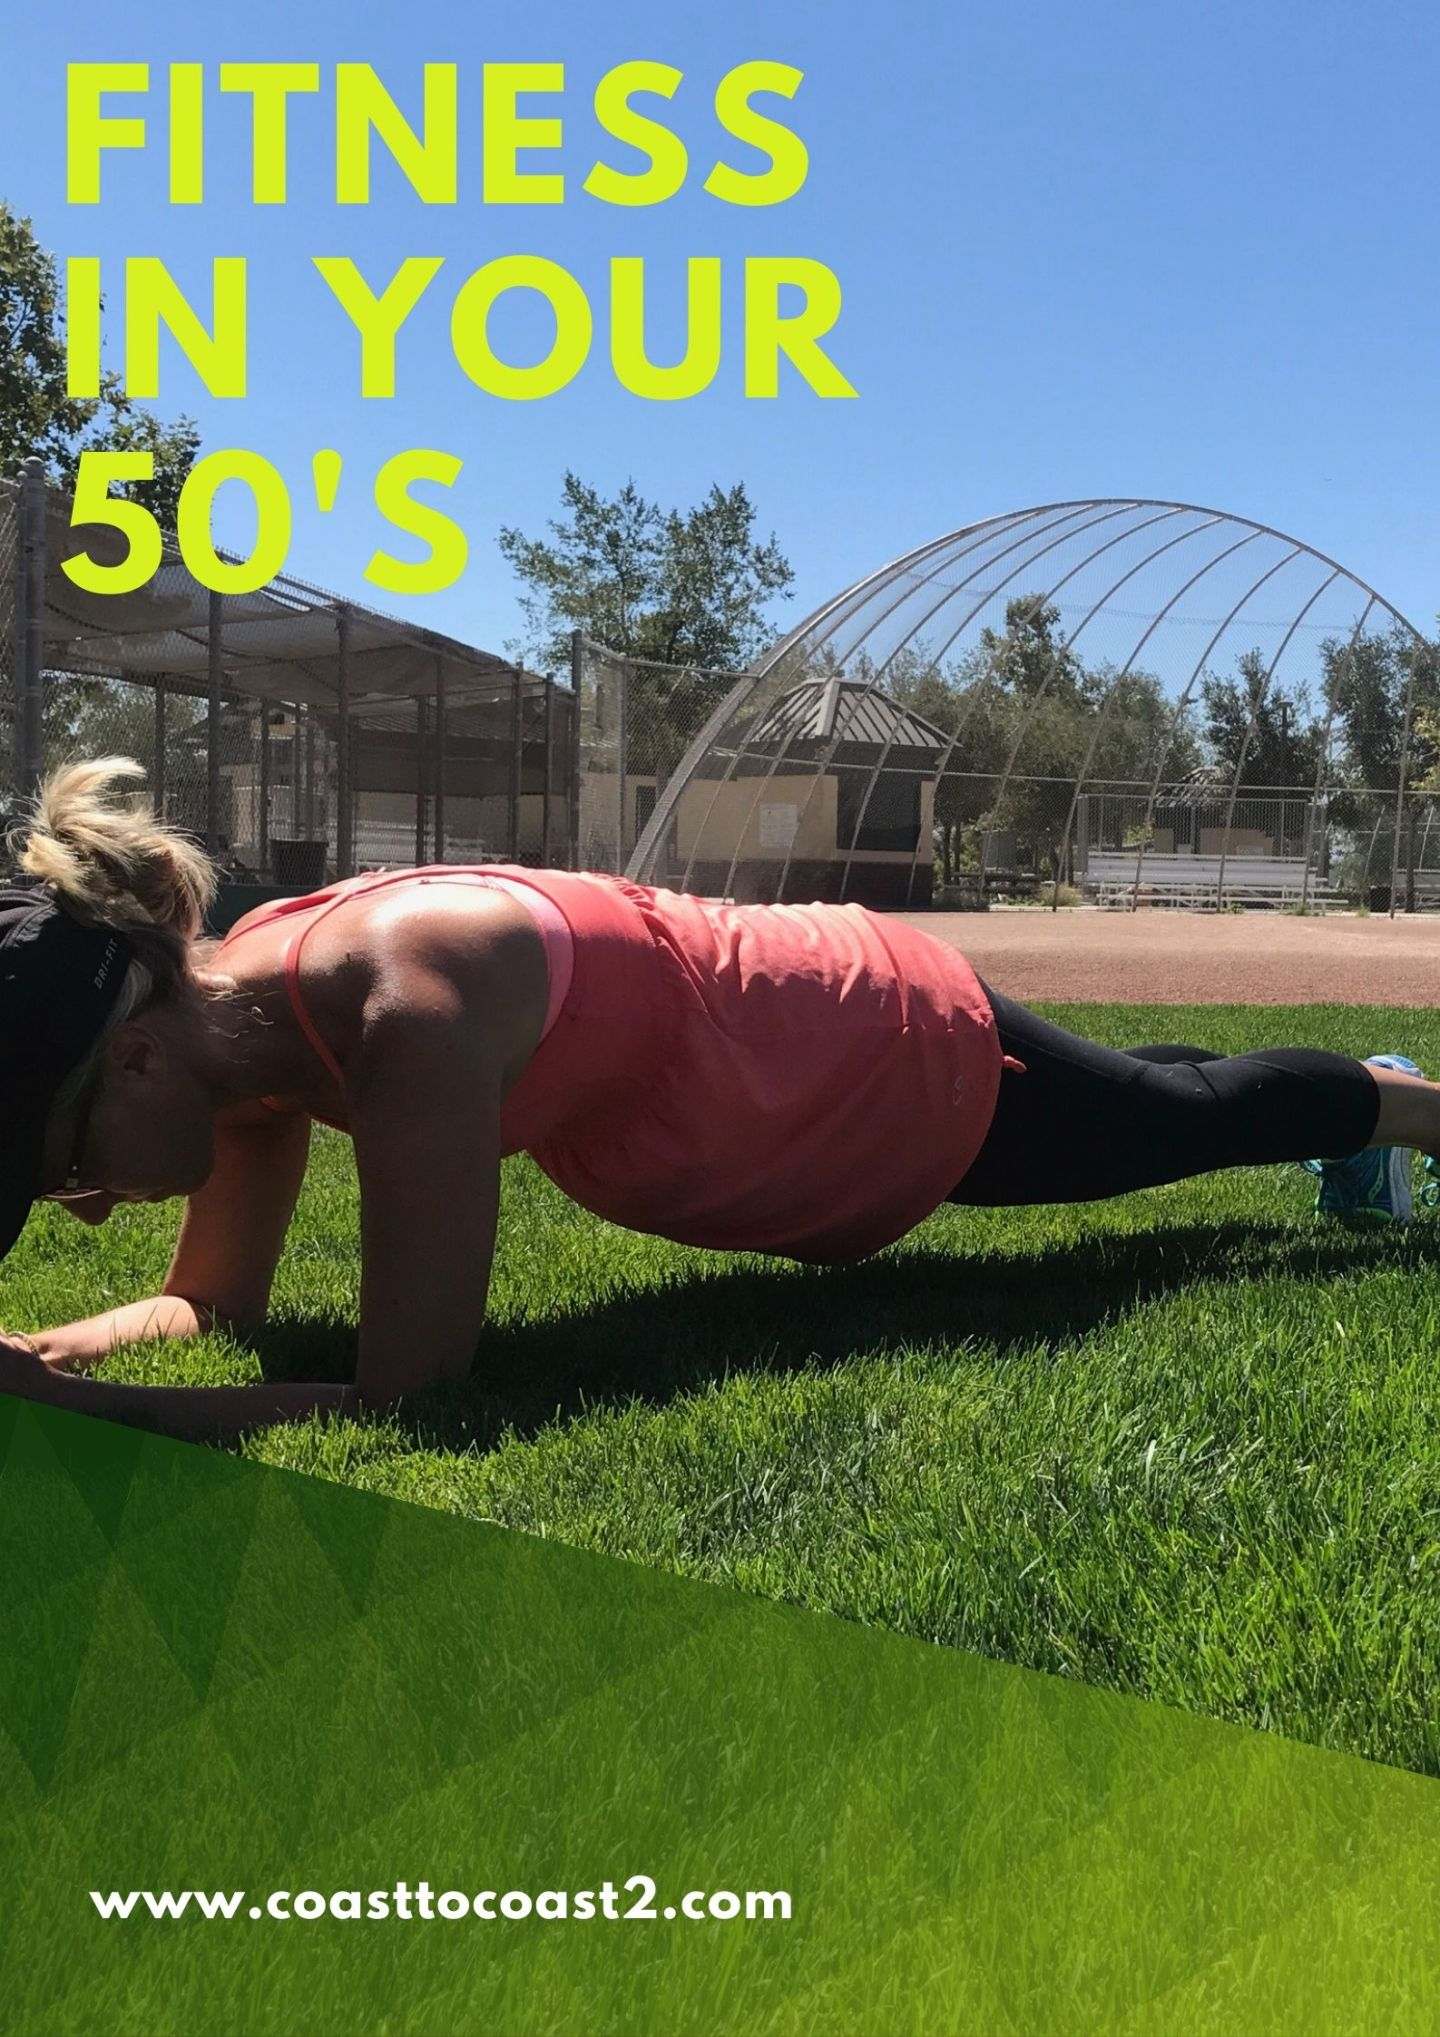 fitness in your 50's